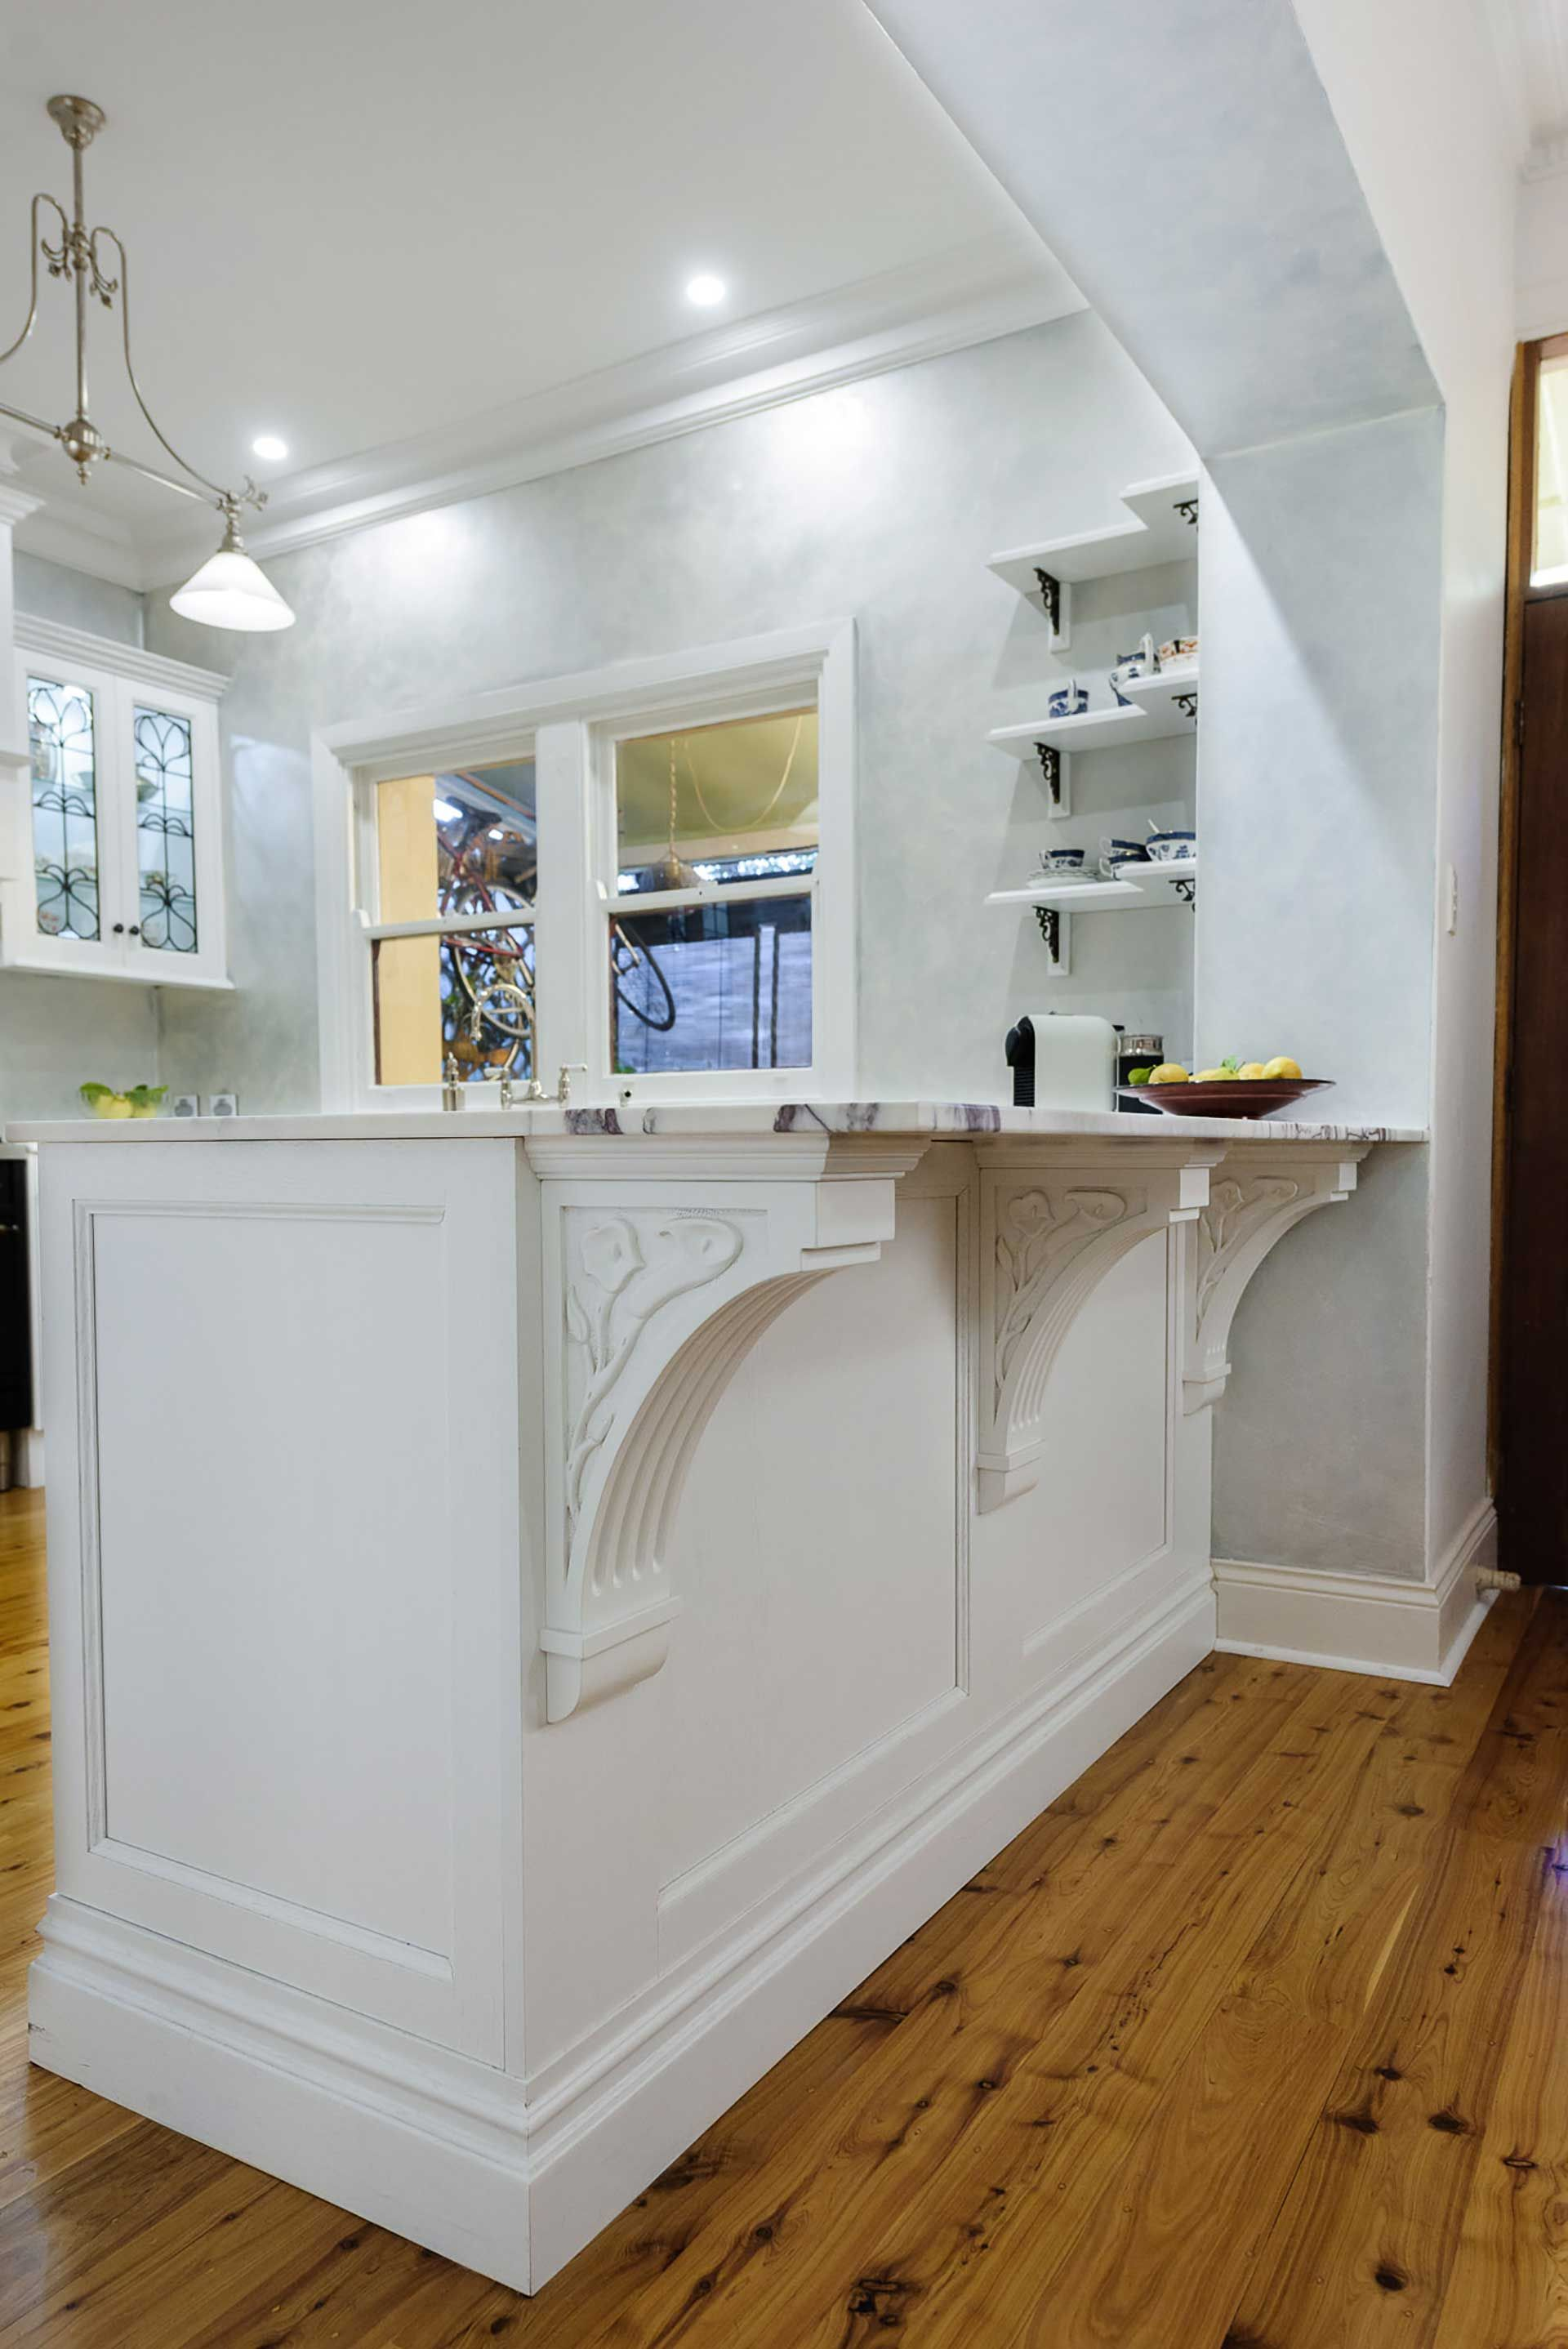 Kitchens Alby Turner Son Bespoke Cabinetry Corbels Under The Bench Overhang Beautiful Kitchens Kitchen Kitchen Projects